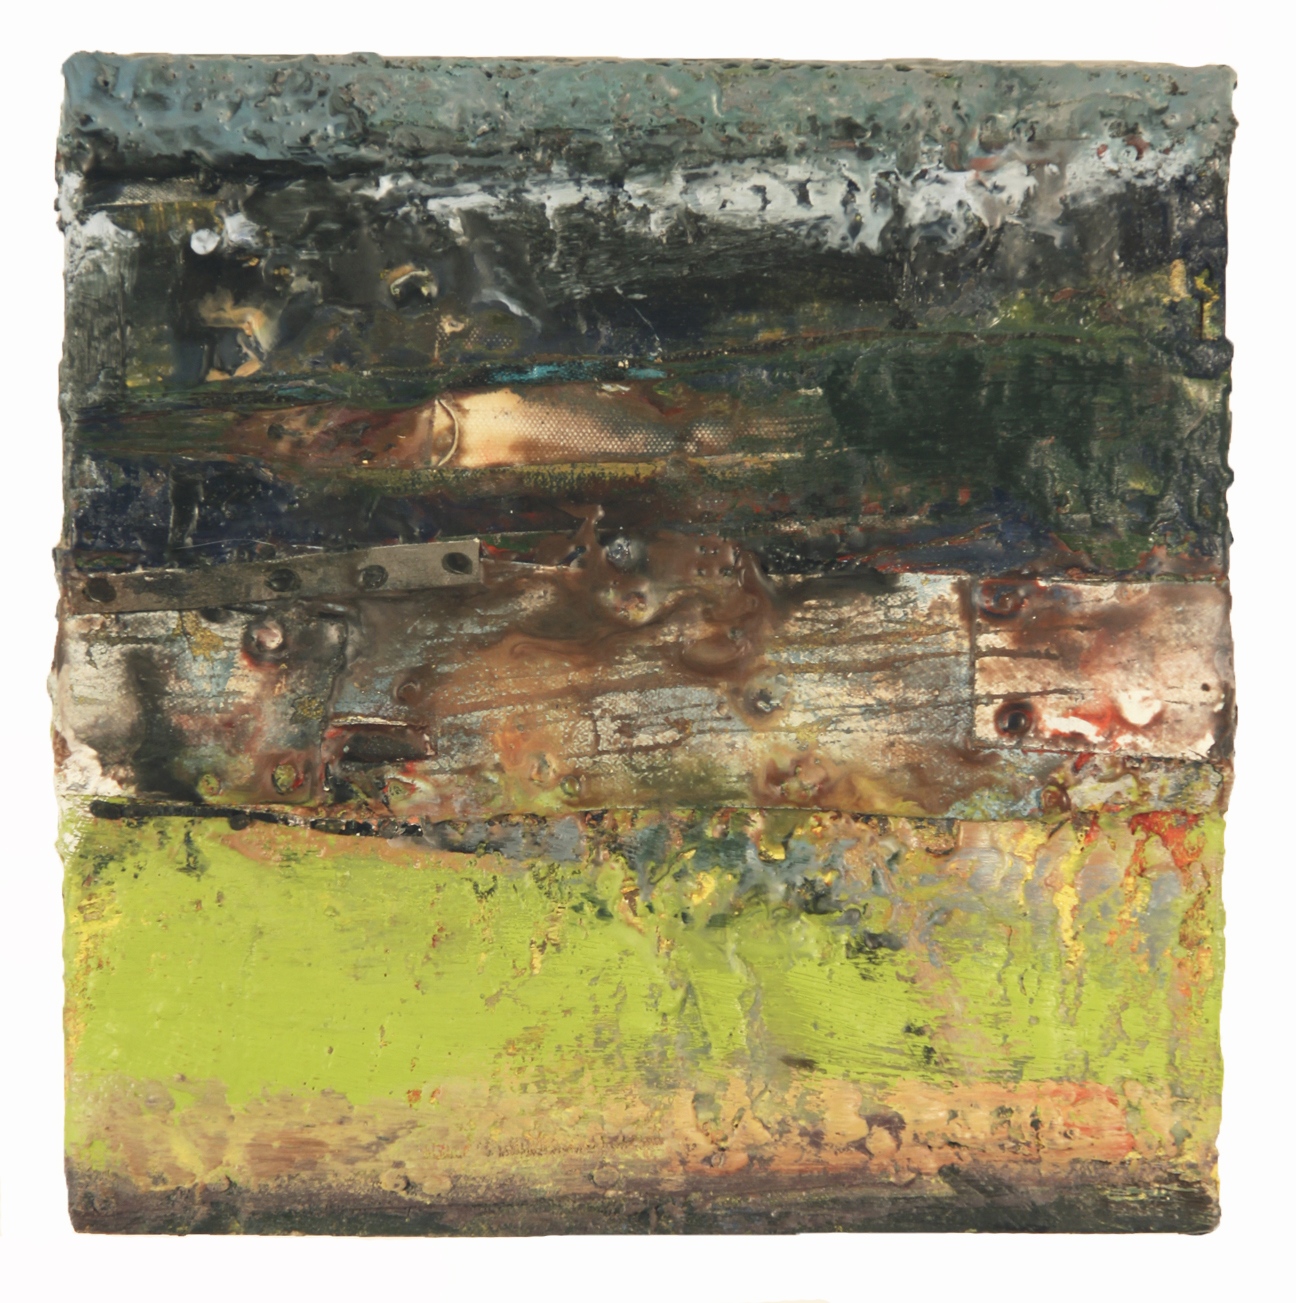 TEMPEST II, 2015  Encaustics and mixed media on panel  12 x 12 inches